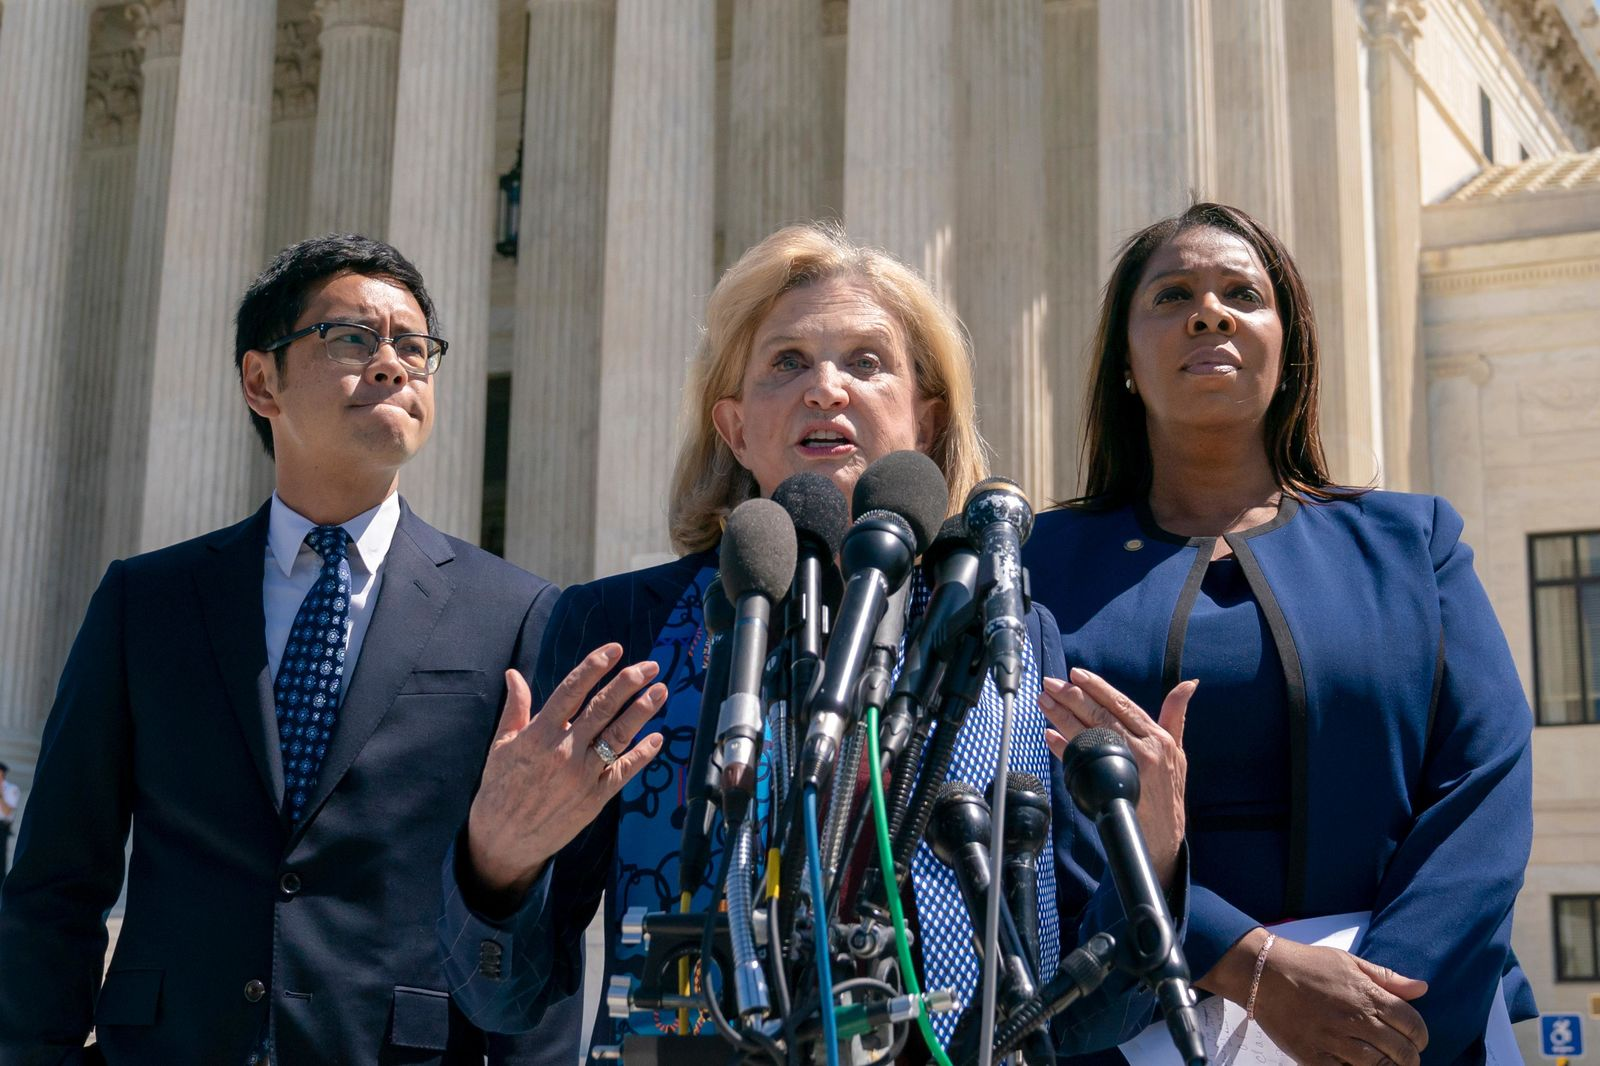 Rep. Carolyn Maloney, D-N.Y., center, joined from left by Dale Ho, attorney for the American Civil Liberties Union, and New York State Attorney General Letitia James, speaks to reporters after the Supreme Court heard arguments over the Trump administration's plan to ask about citizenship on the 2020 census, in Washington, Tuesday, April 23, 2019.{ } (AP Photo/J. Scott Applewhite)